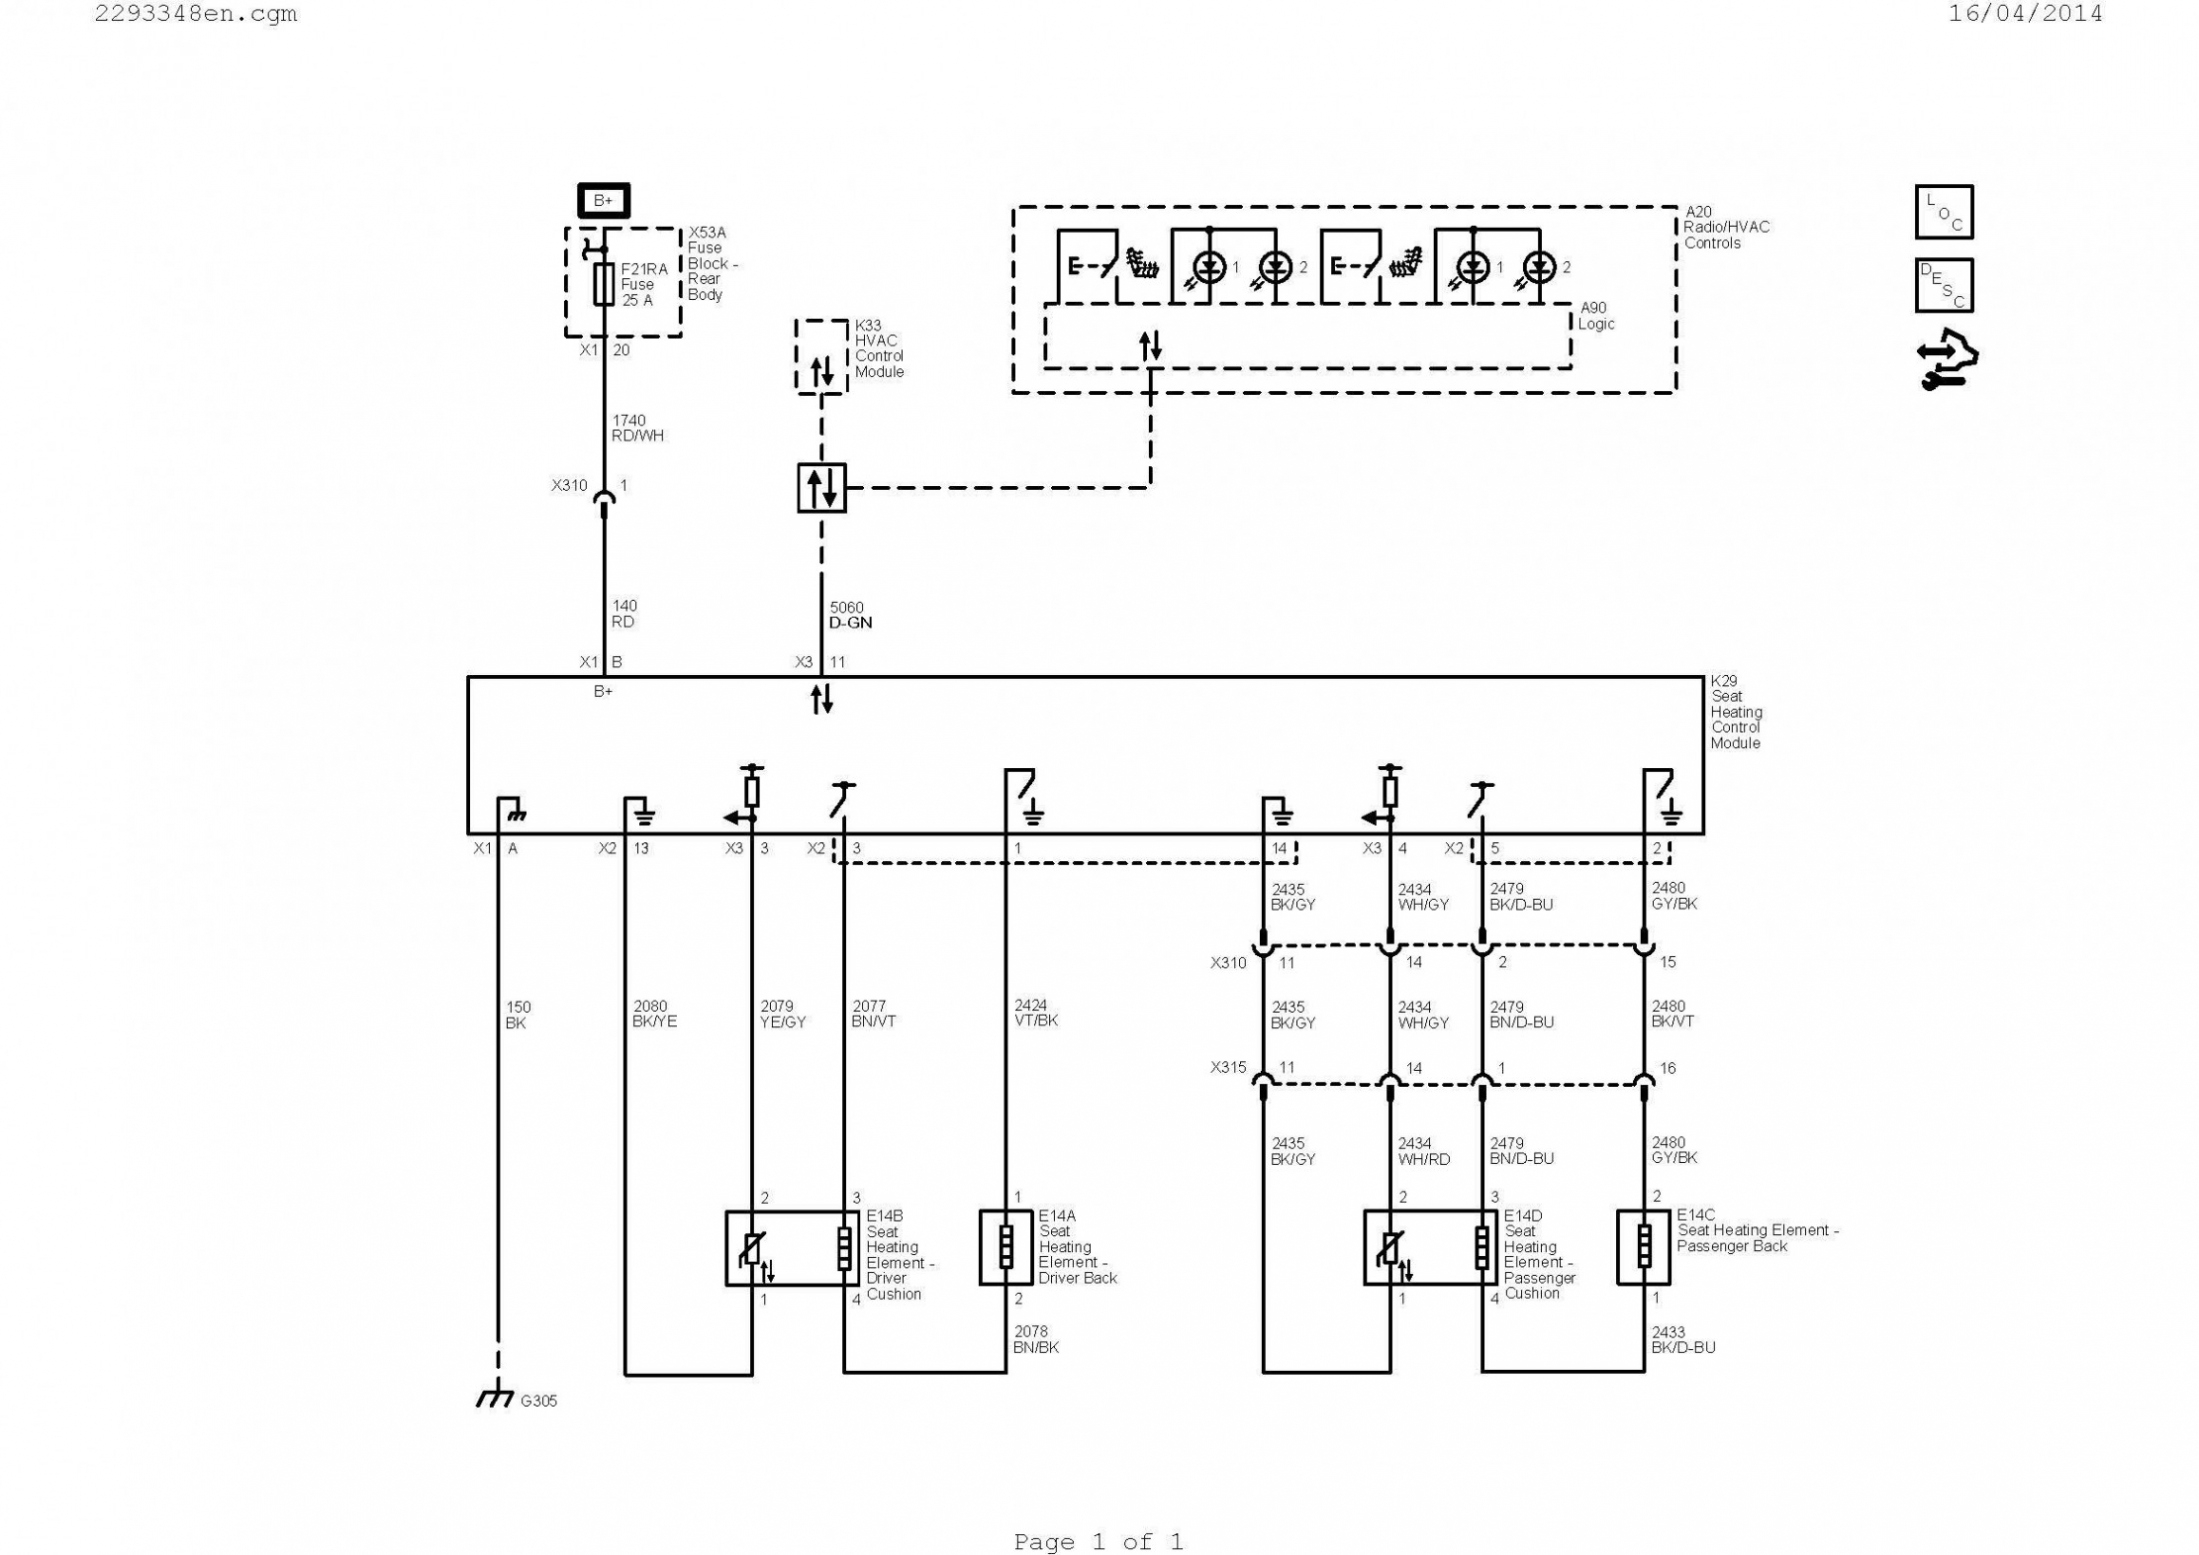 Cat 302 5c Excavator Wiring Diagram. . Wiring Diagram Cat Excavator Wiring Diagrams on cat excavator specs, cat excavator blueprints, cat excavator schematics, cat excavator service manual, cat telehandler wiring diagrams, cat excavator controls, cat excavator dimensions, cat truck wiring diagrams, cat excavator parts list, cat excavator drawings,